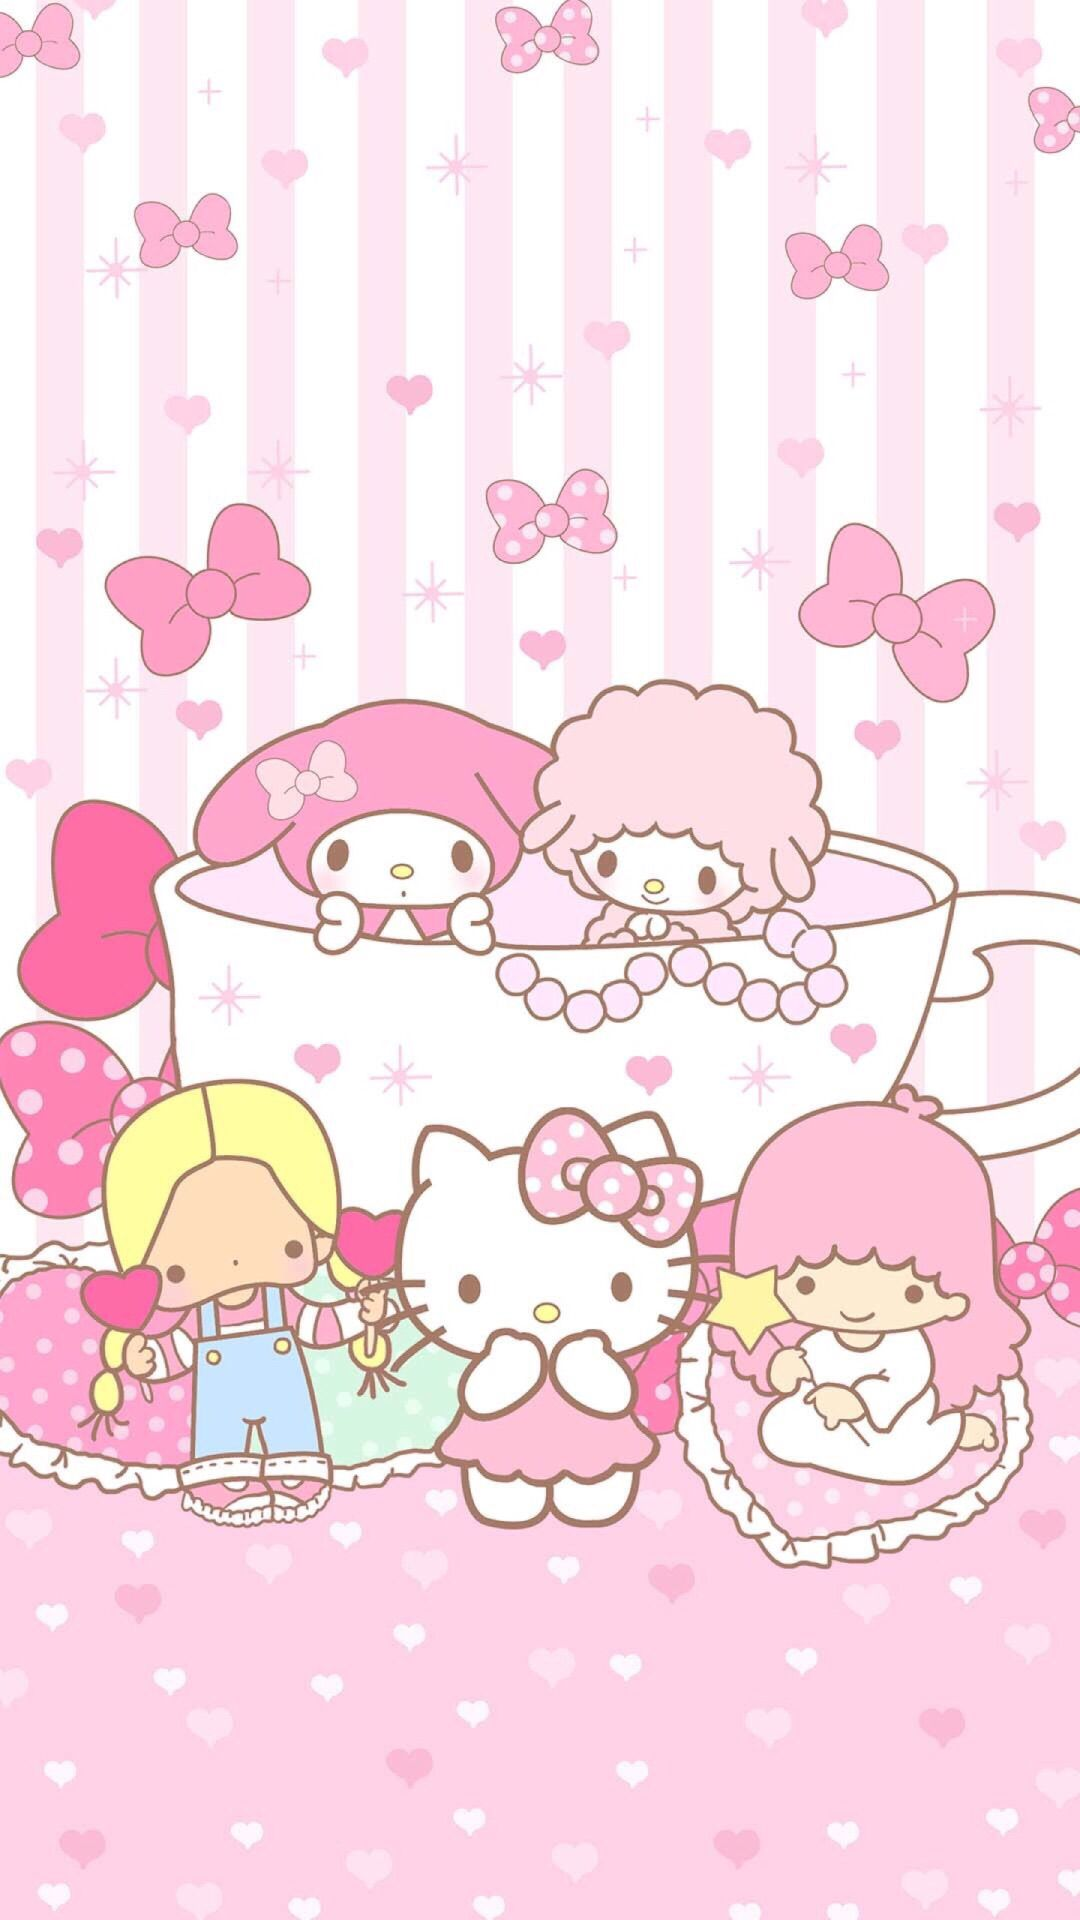 Popular Wallpaper Hello Kitty Friend - 91246726e1b72ce0b4c4a7fd7e9ab6f1  Trends_988916.jpg